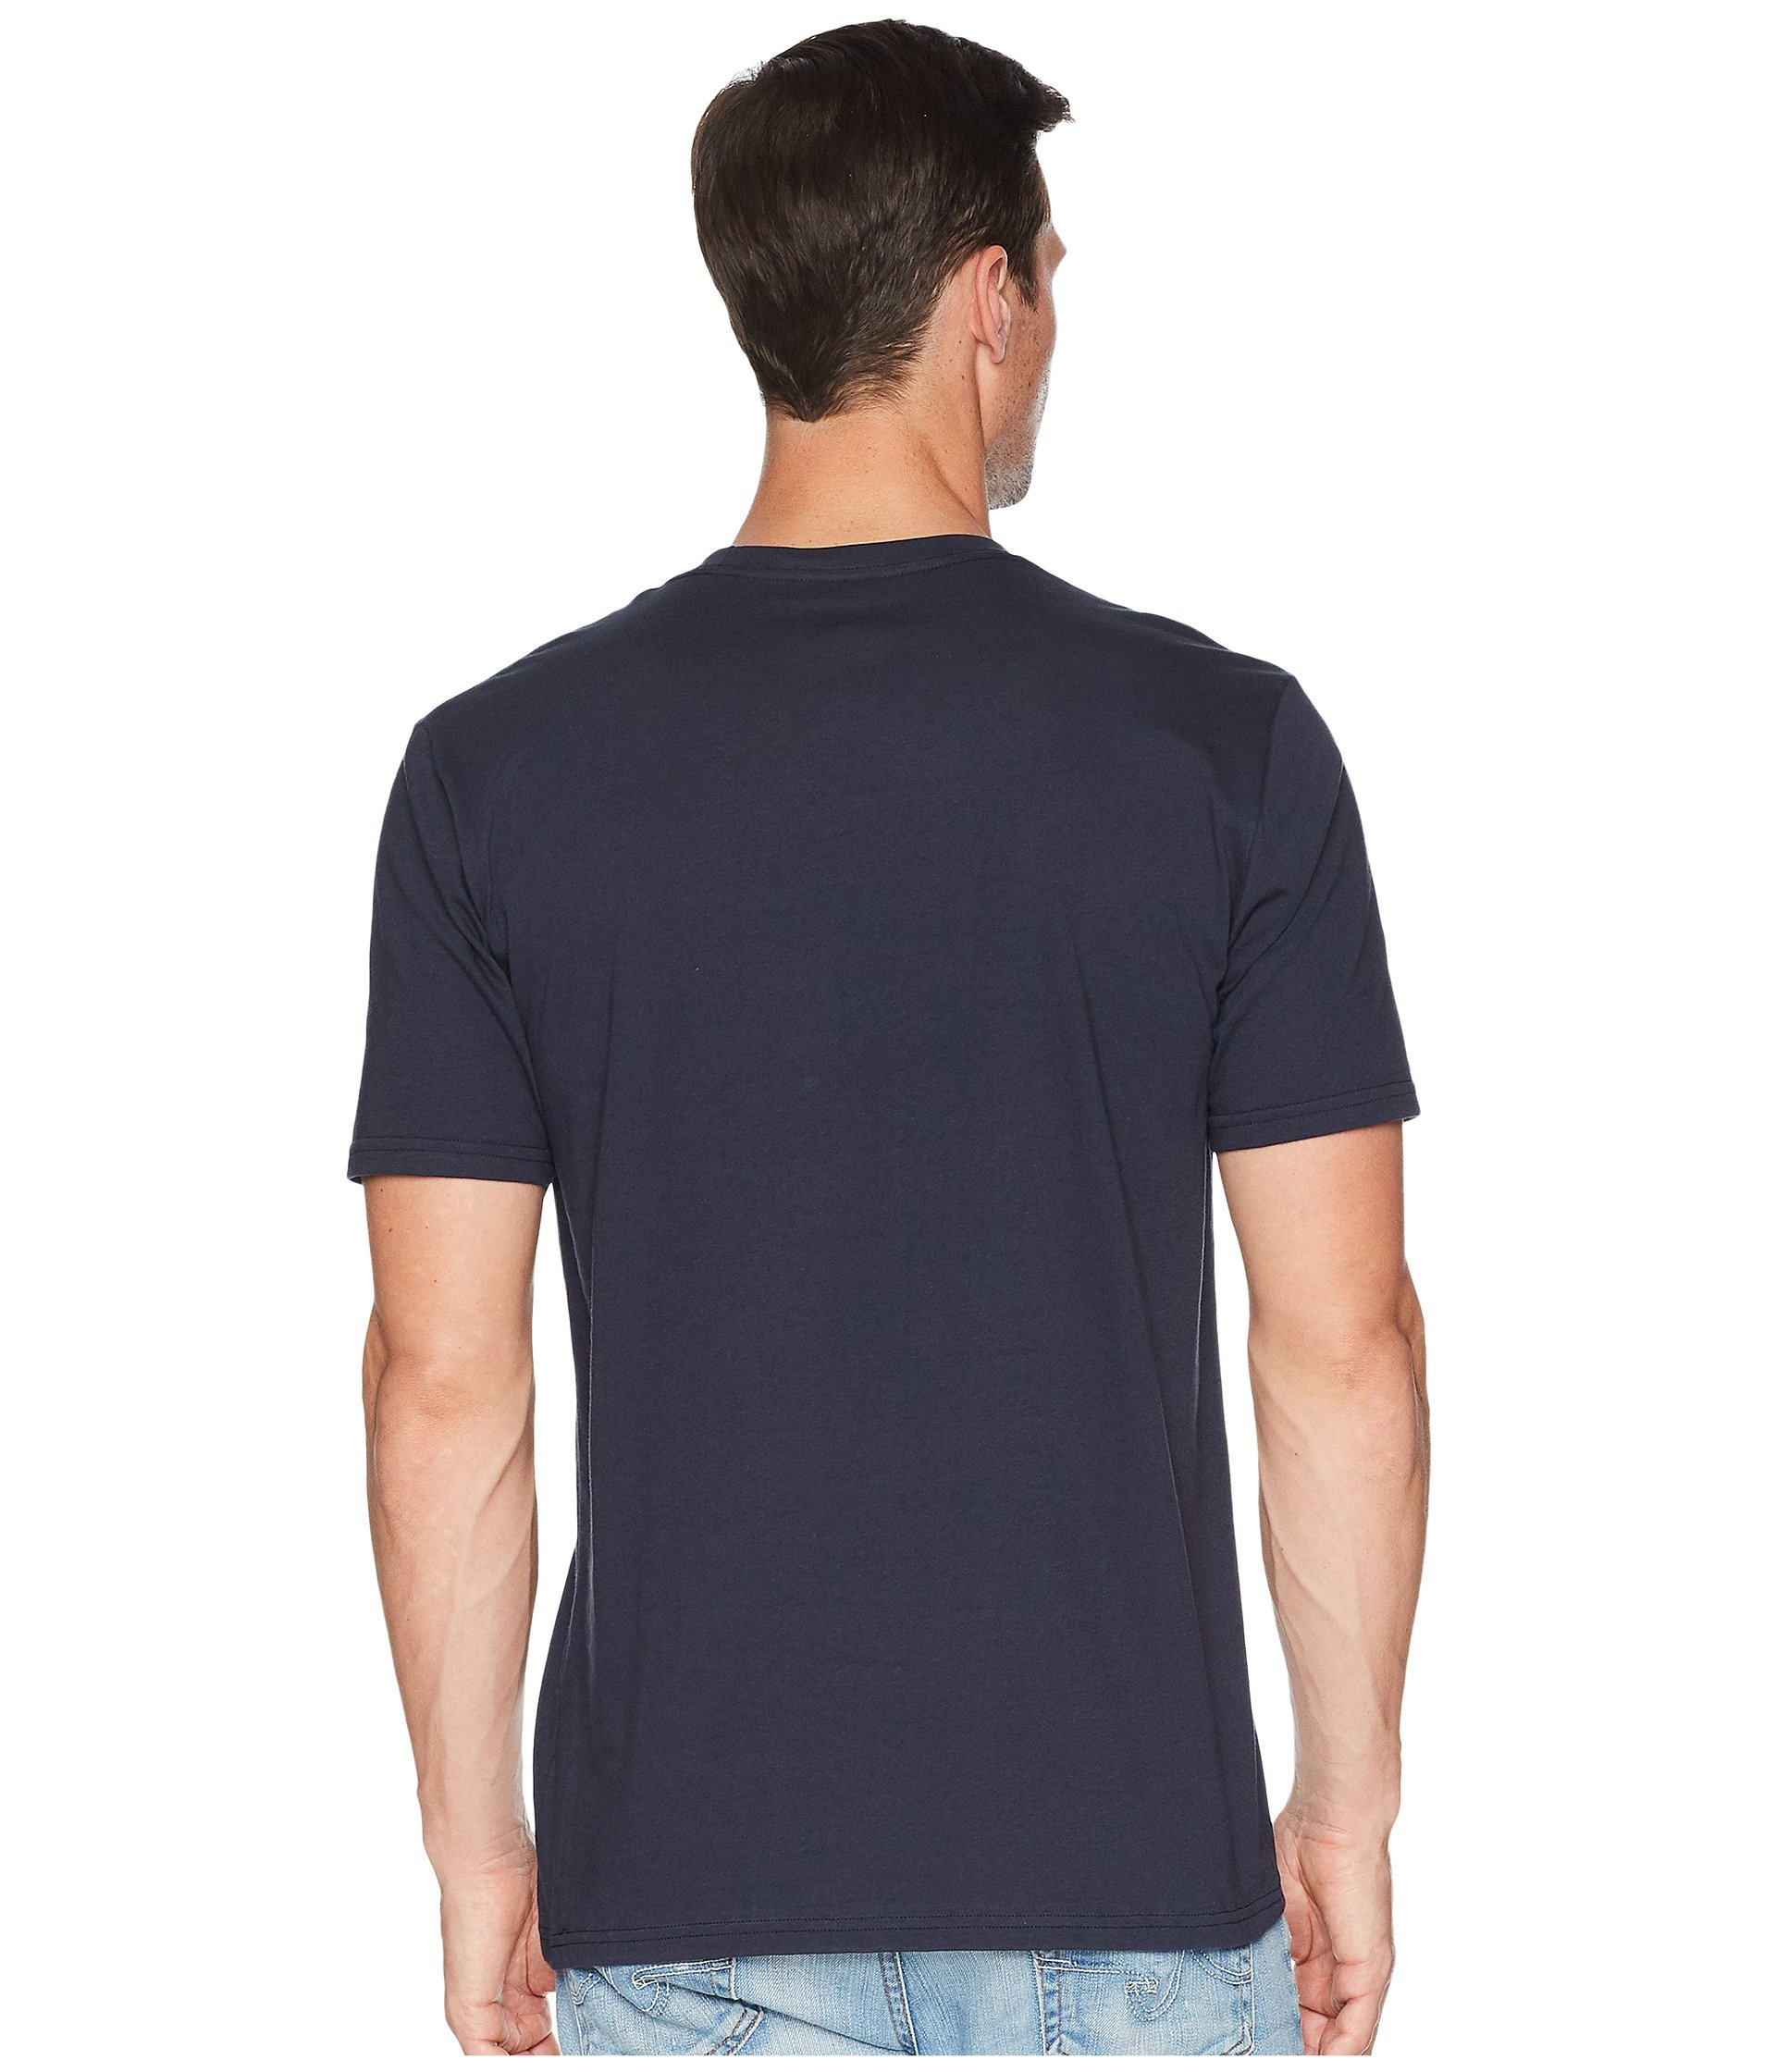 Tee 1 tnf 2 Face North White Navy The Sleeve Dome Short Urban TwZBWx40